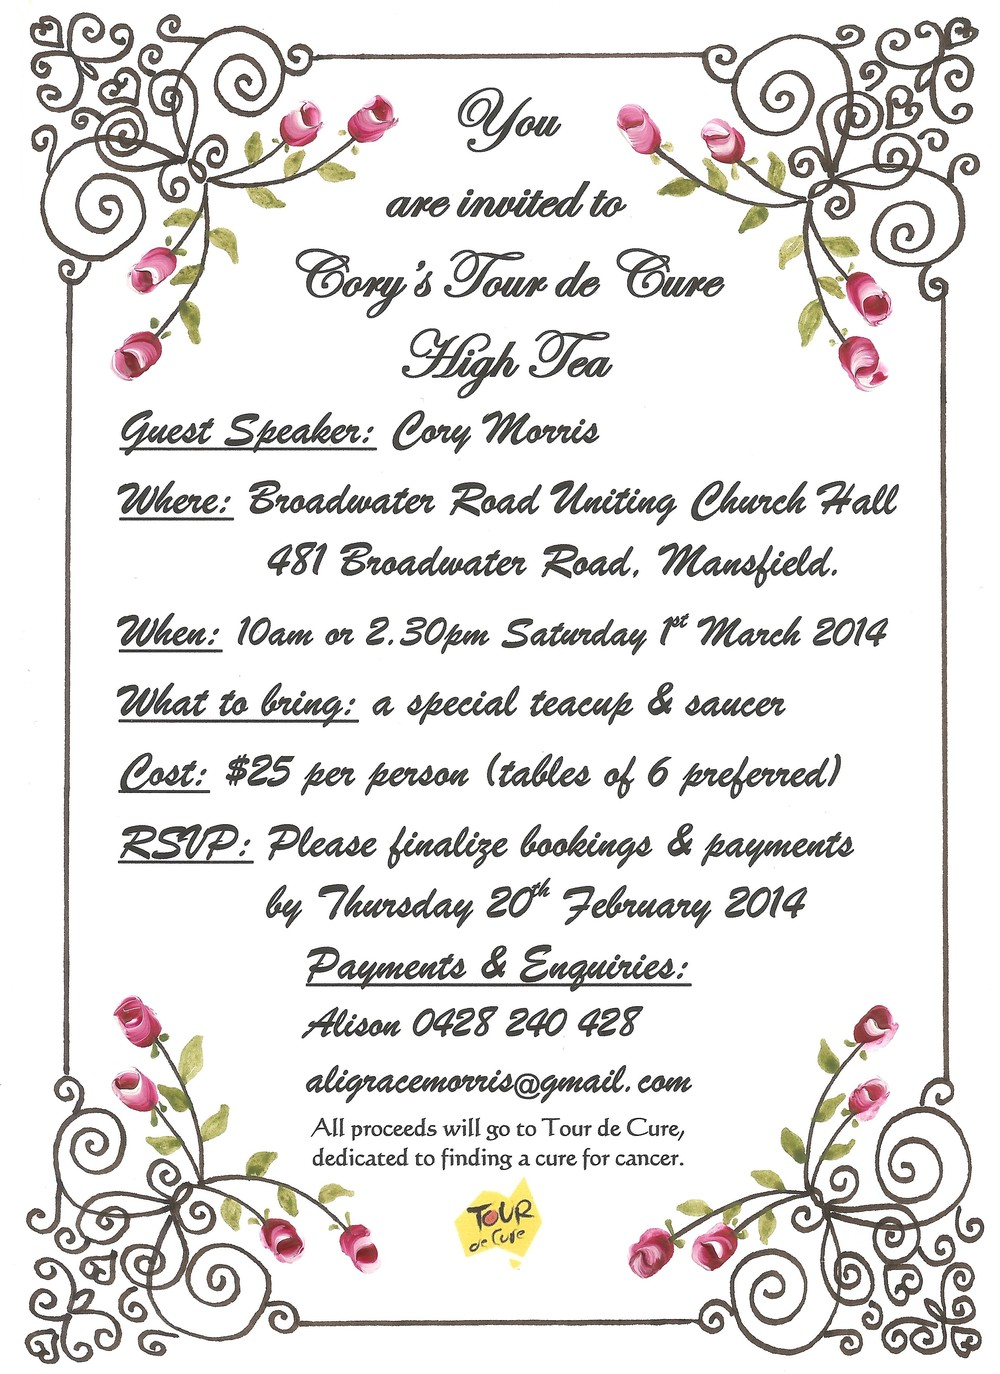 High Tea Invite 2014.jpg